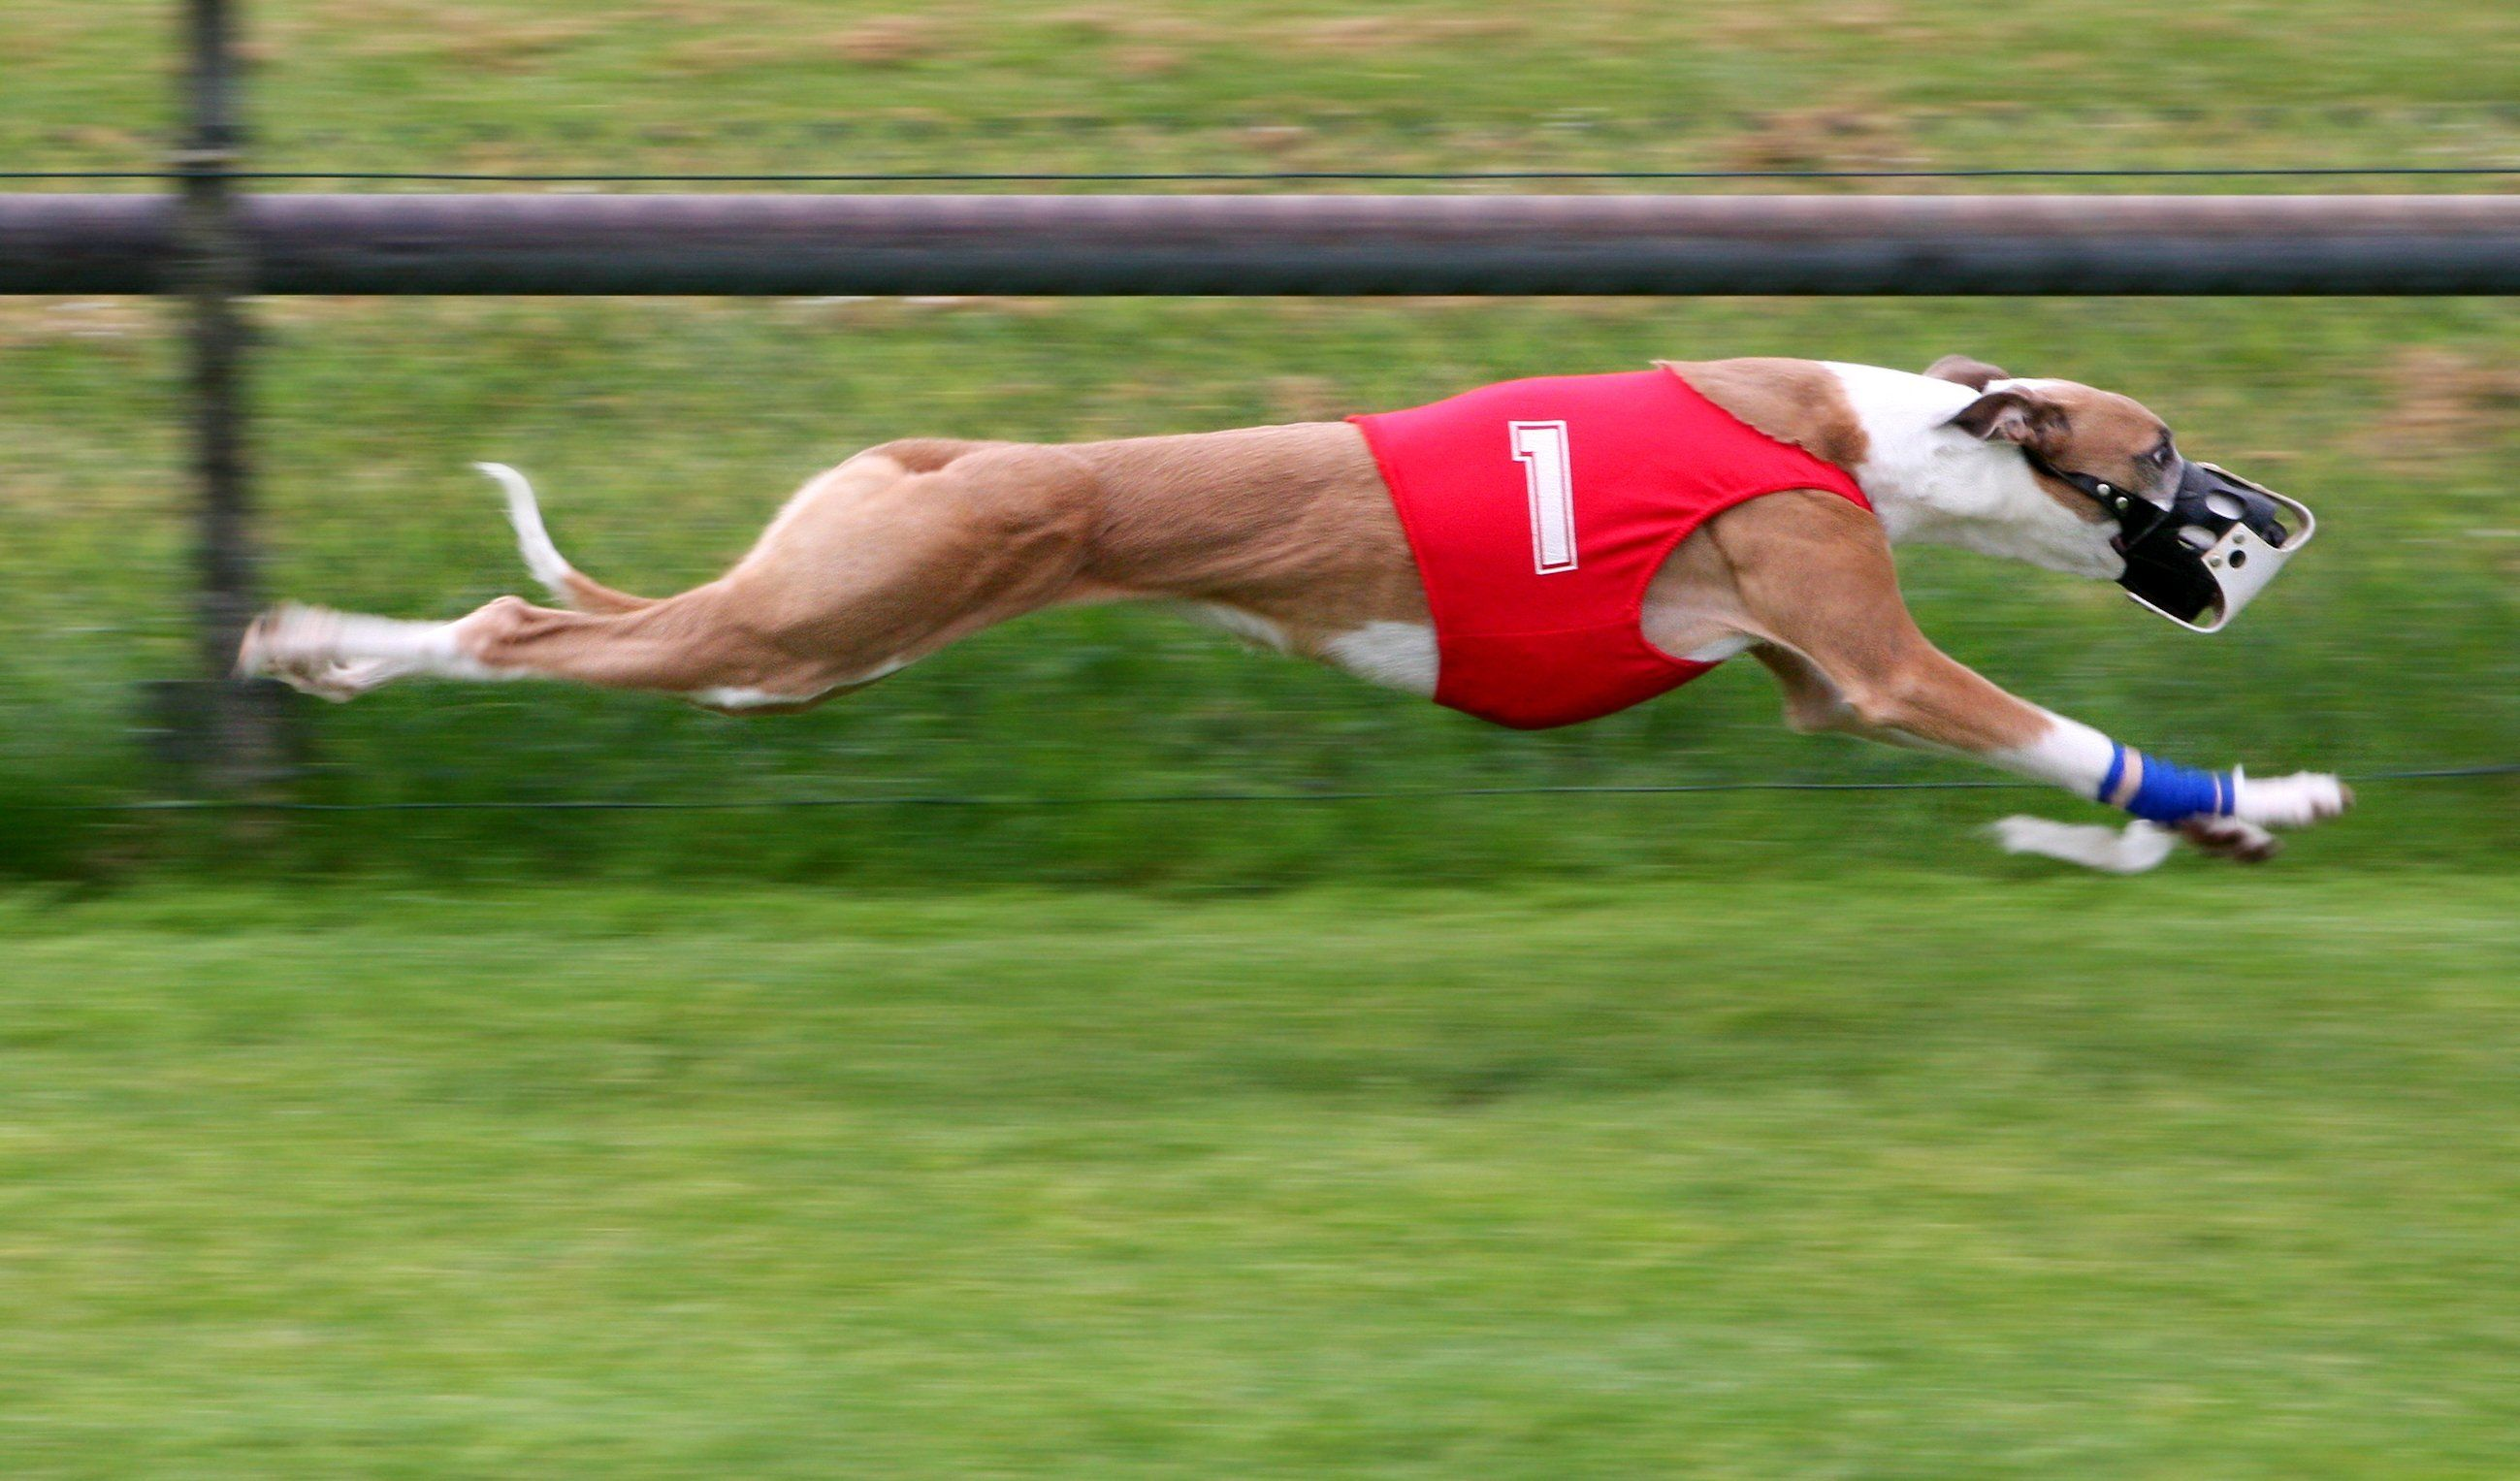 Dog Racing Banned In Florida Thousands Need Homes Dogs Racing